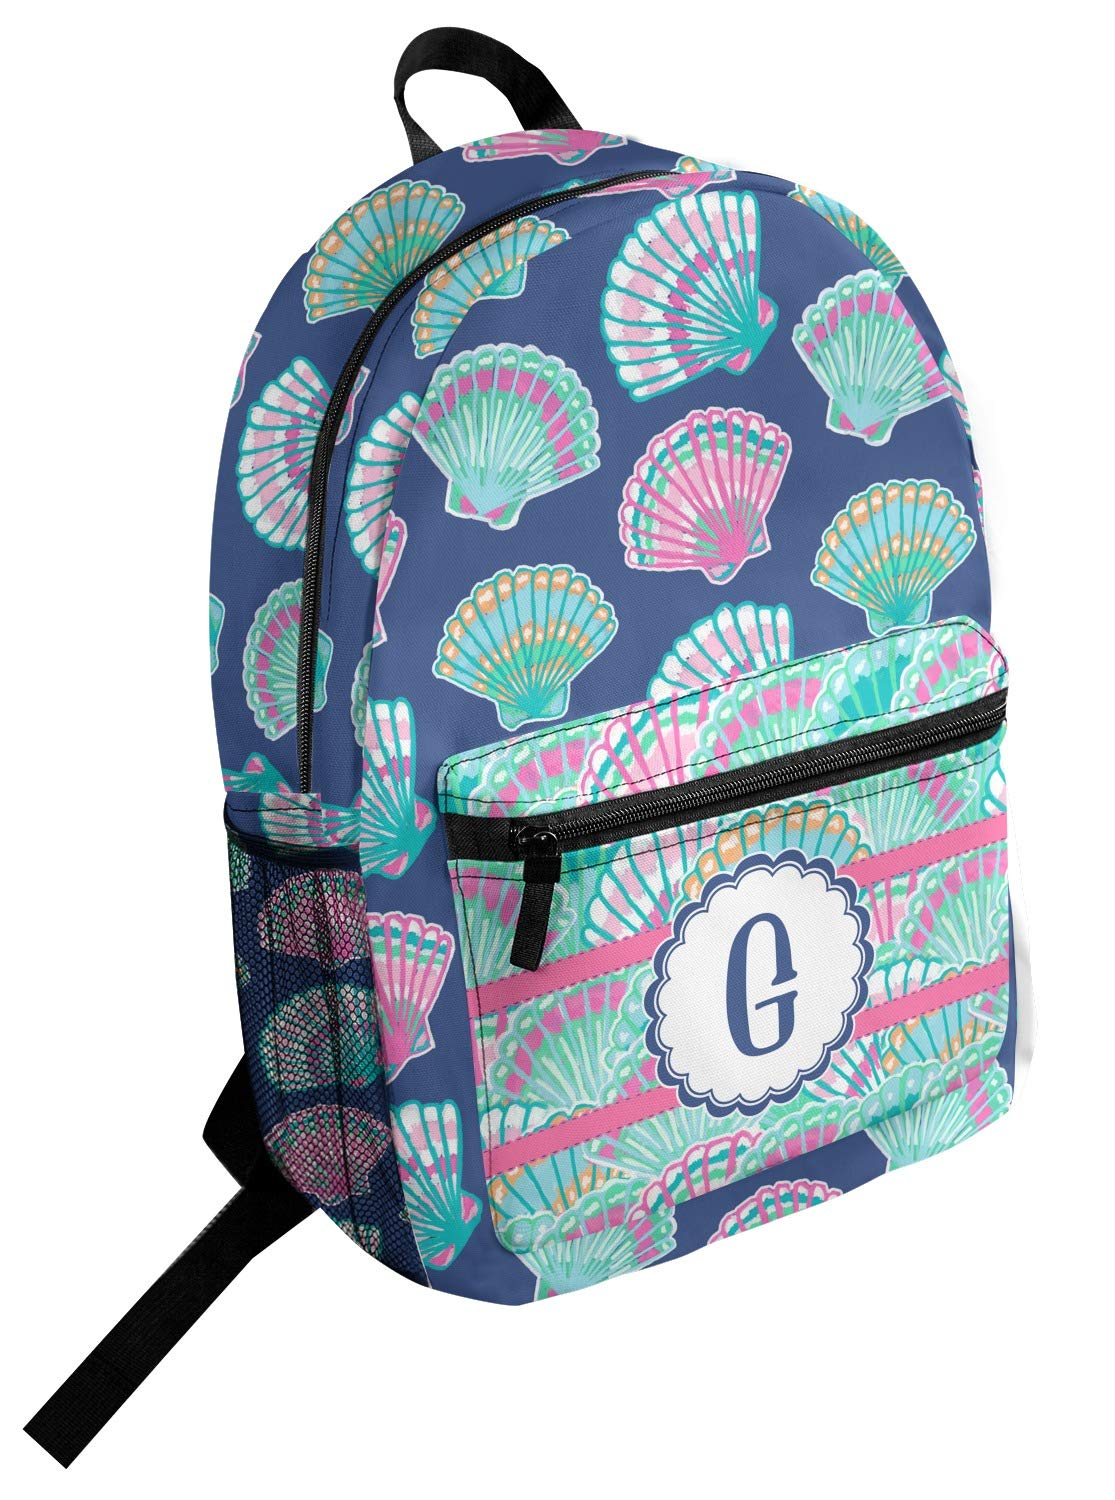 Preppy Sea Shells Student Backpack Personalized